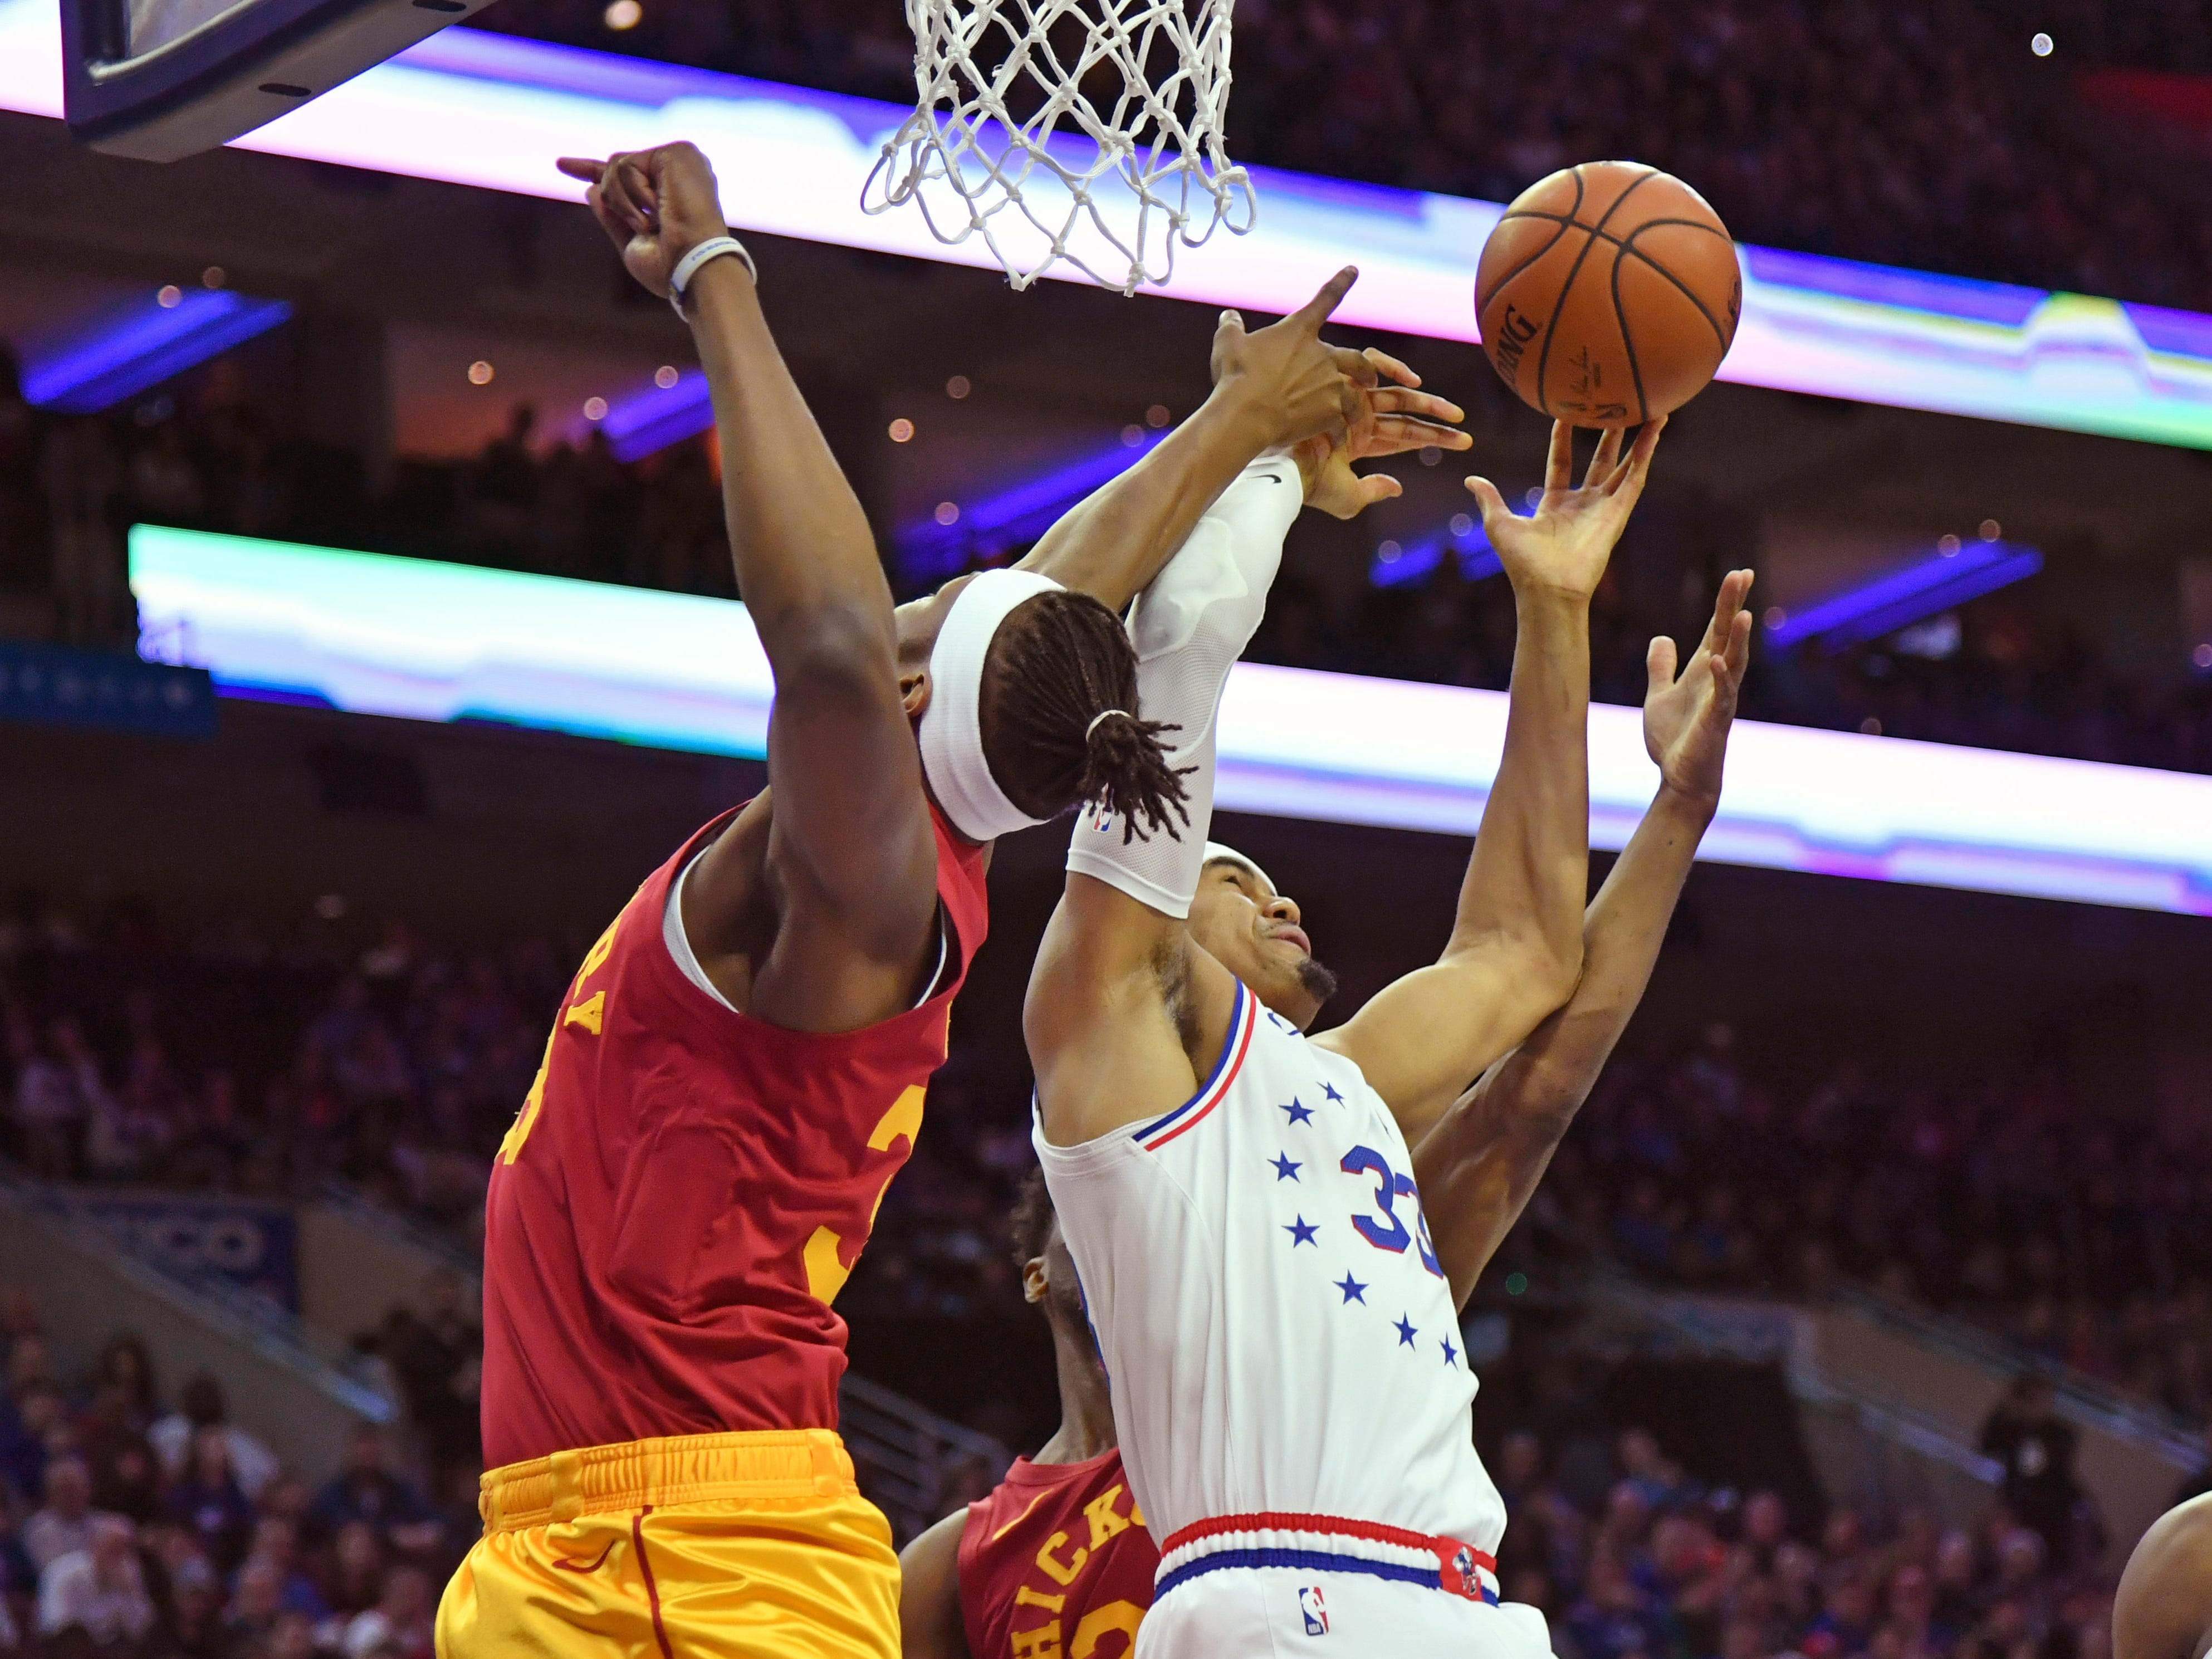 Mar 10, 2019; Philadelphia, PA, USA; Indiana Pacers center Myles Turner (33) and Philadelphia 76ers forward Tobias Harris (33) battle for the ball during the first quarter at Wells Fargo Center.